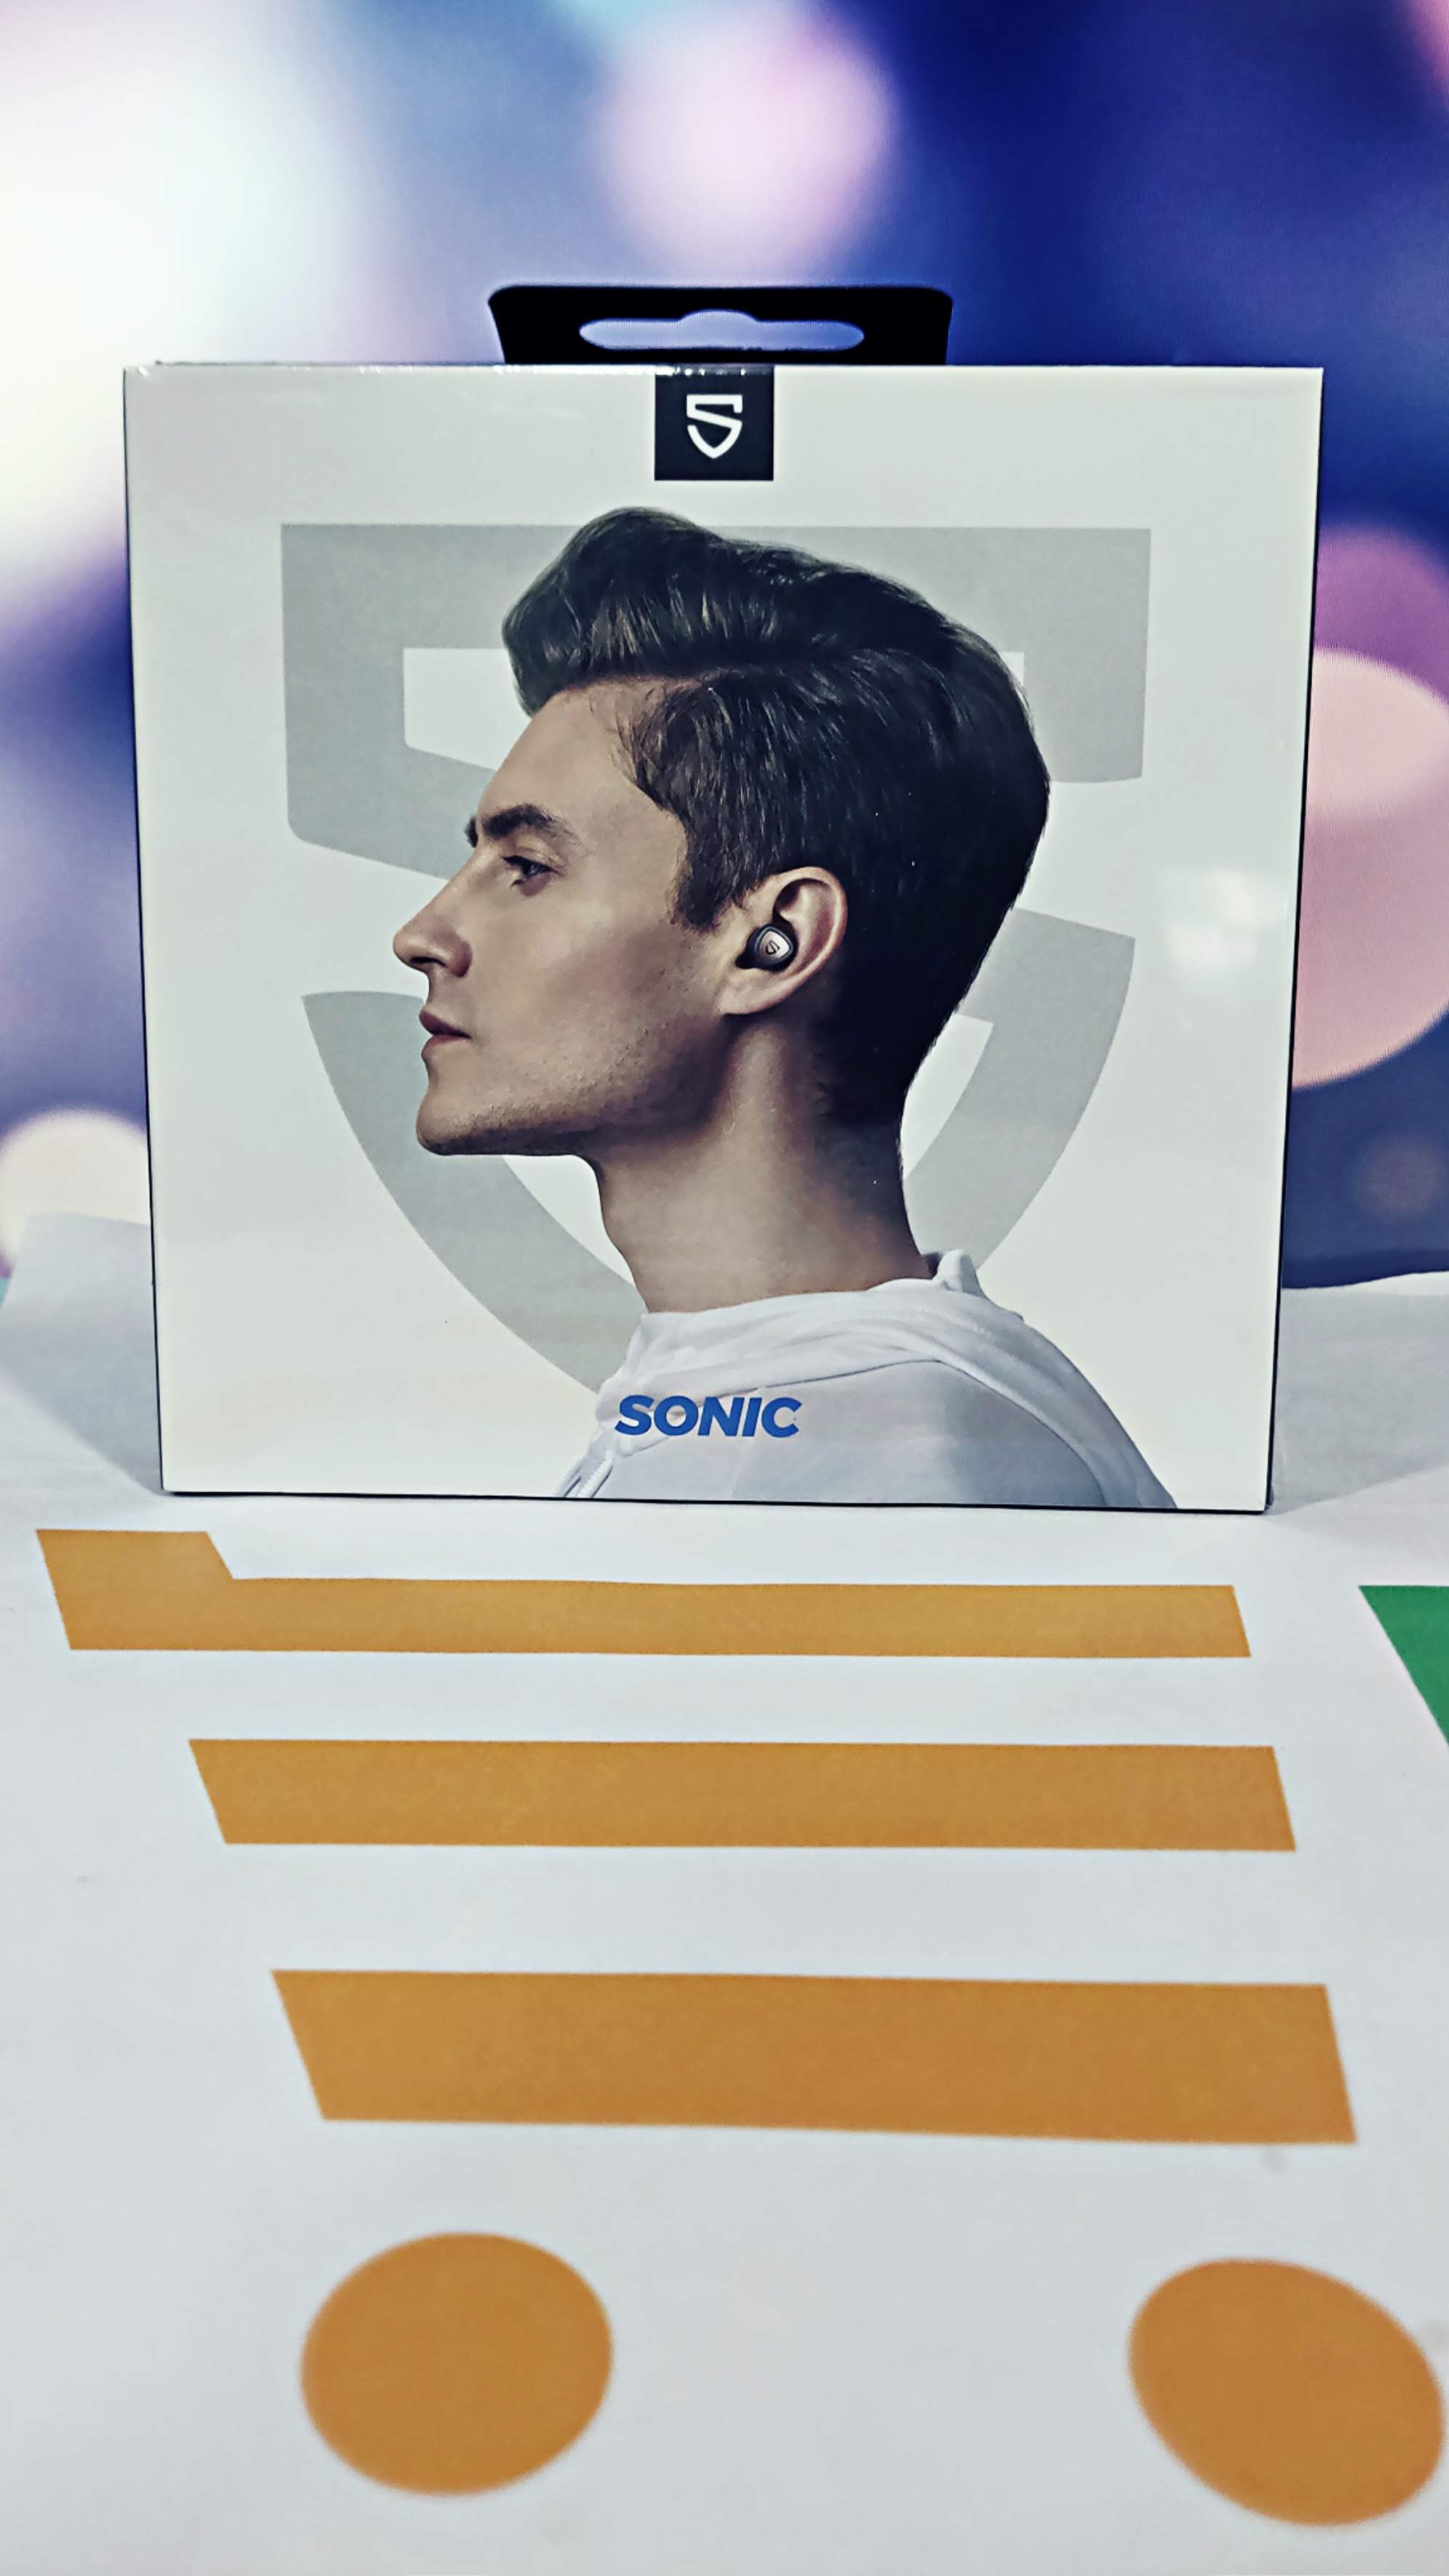 Soundpeats sonic bluetooth 5.2 wireless earphones qcc3040 chipset aptx-adaptive cvc 8.0 noise reduction earbuds 45h play time (gray)